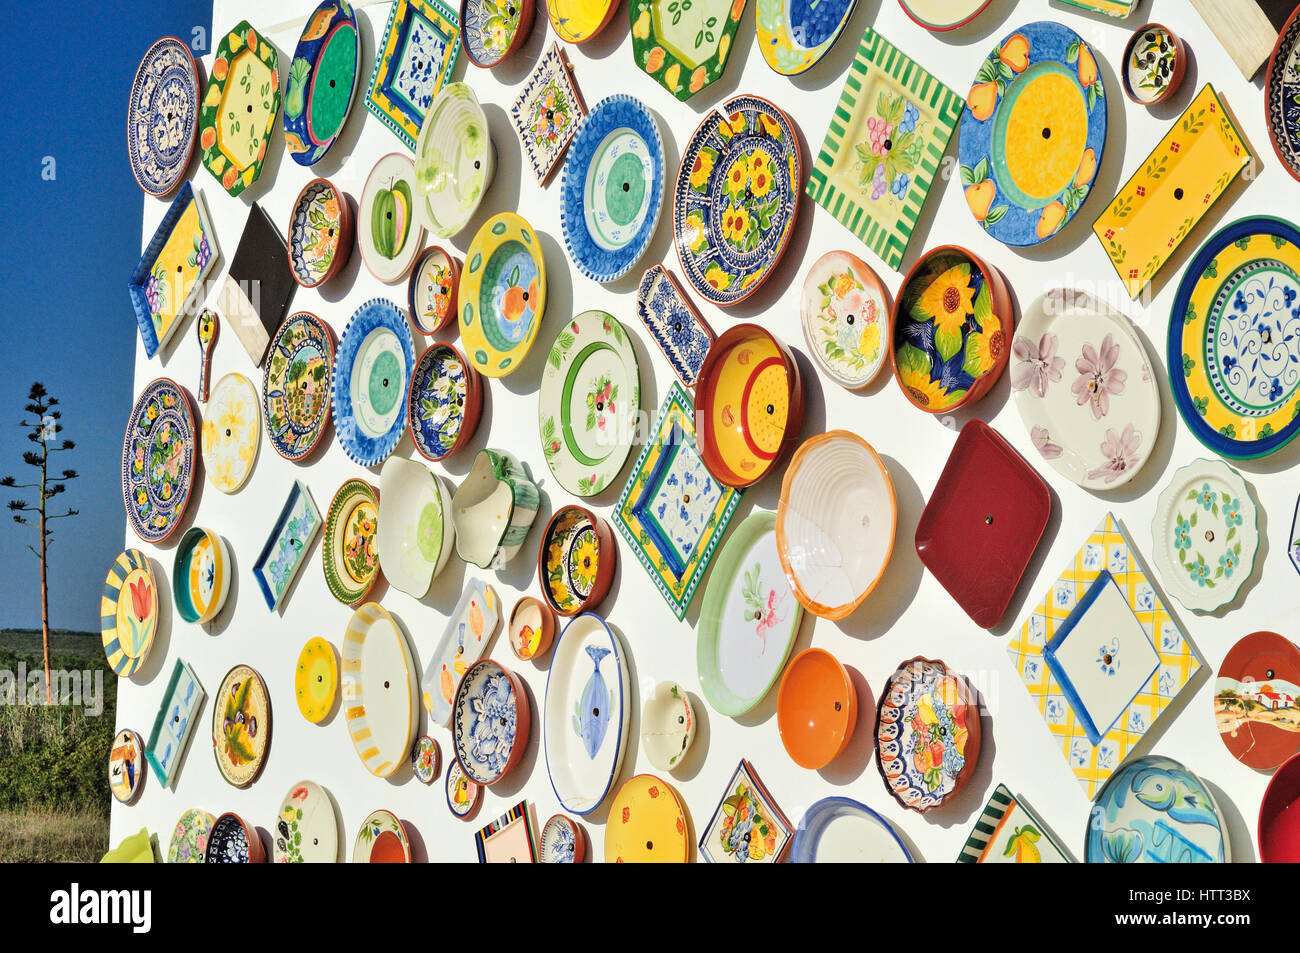 Colorful ceramic plates at a white washed wall - Stock Image